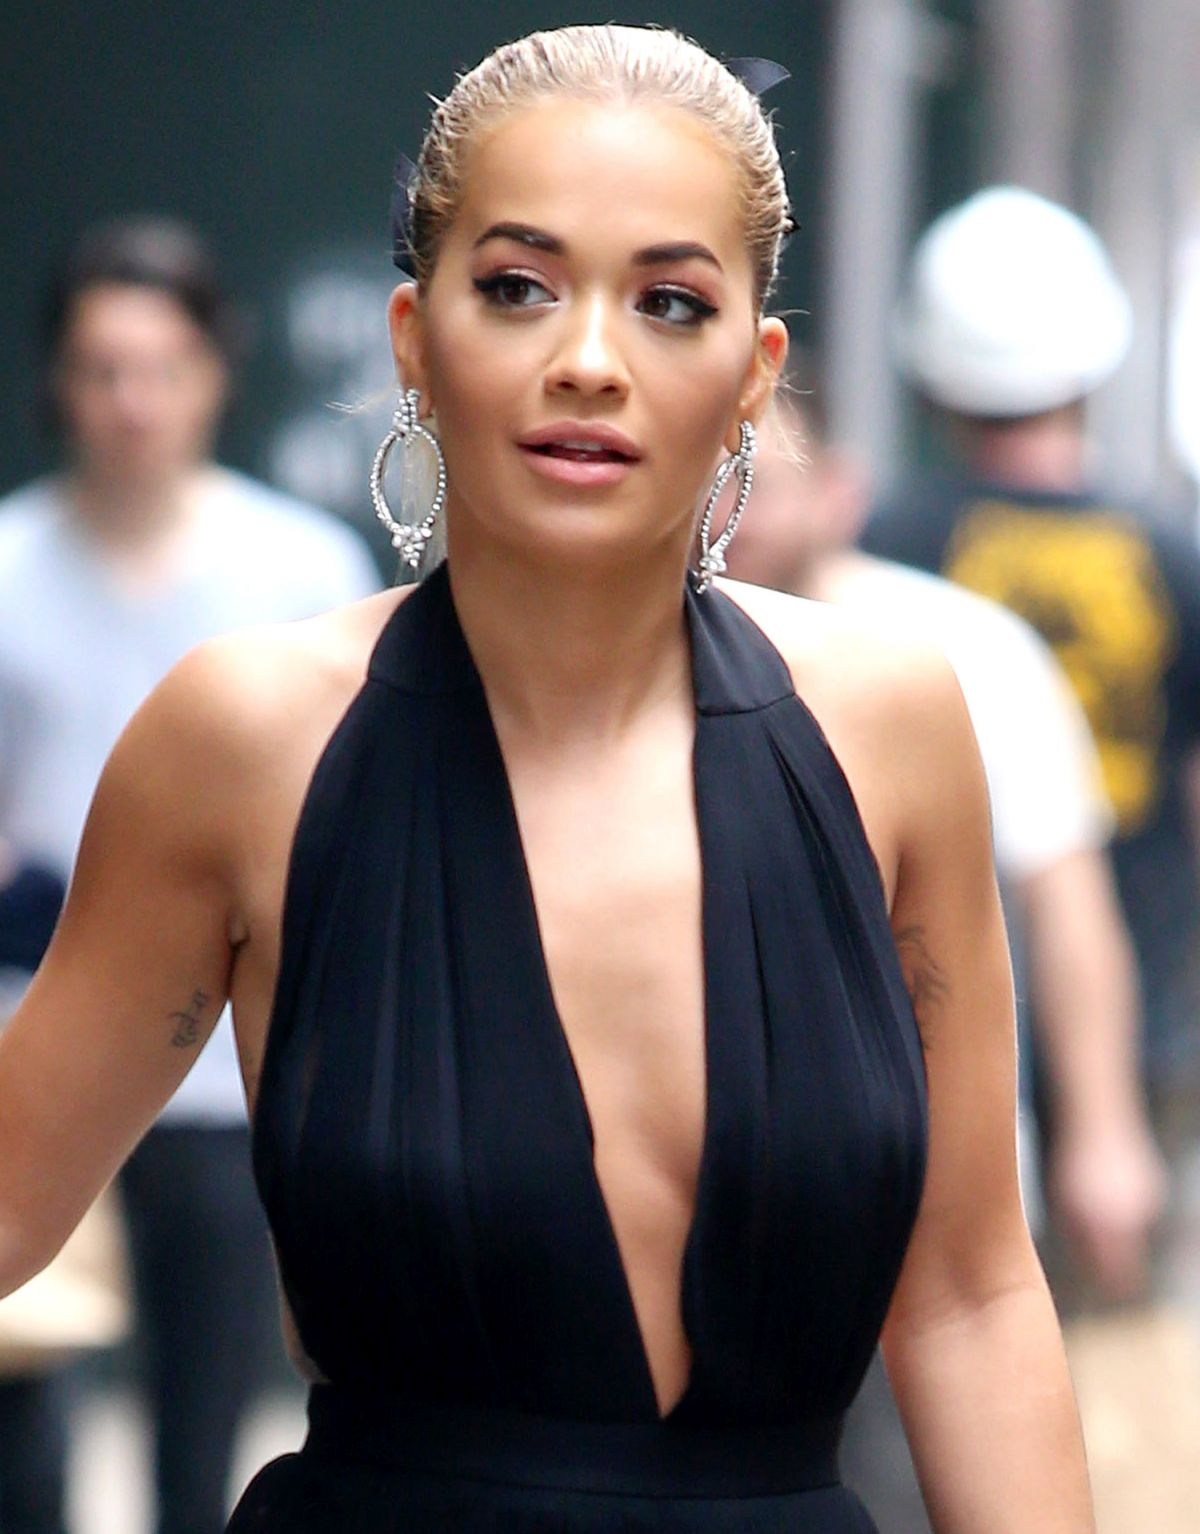 America S Miss World 2017 And Miss Teen World America 2017: RITA ORA On The Set Of America's Next Top Model In New